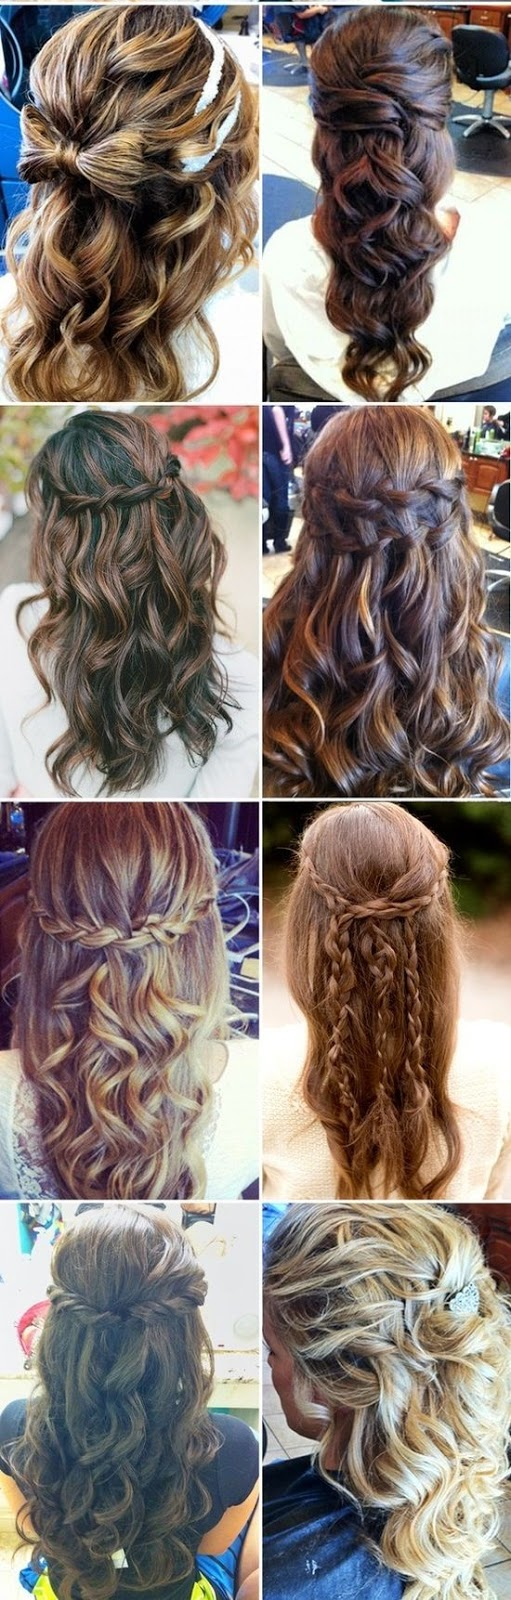 beauty hairstyle ideas